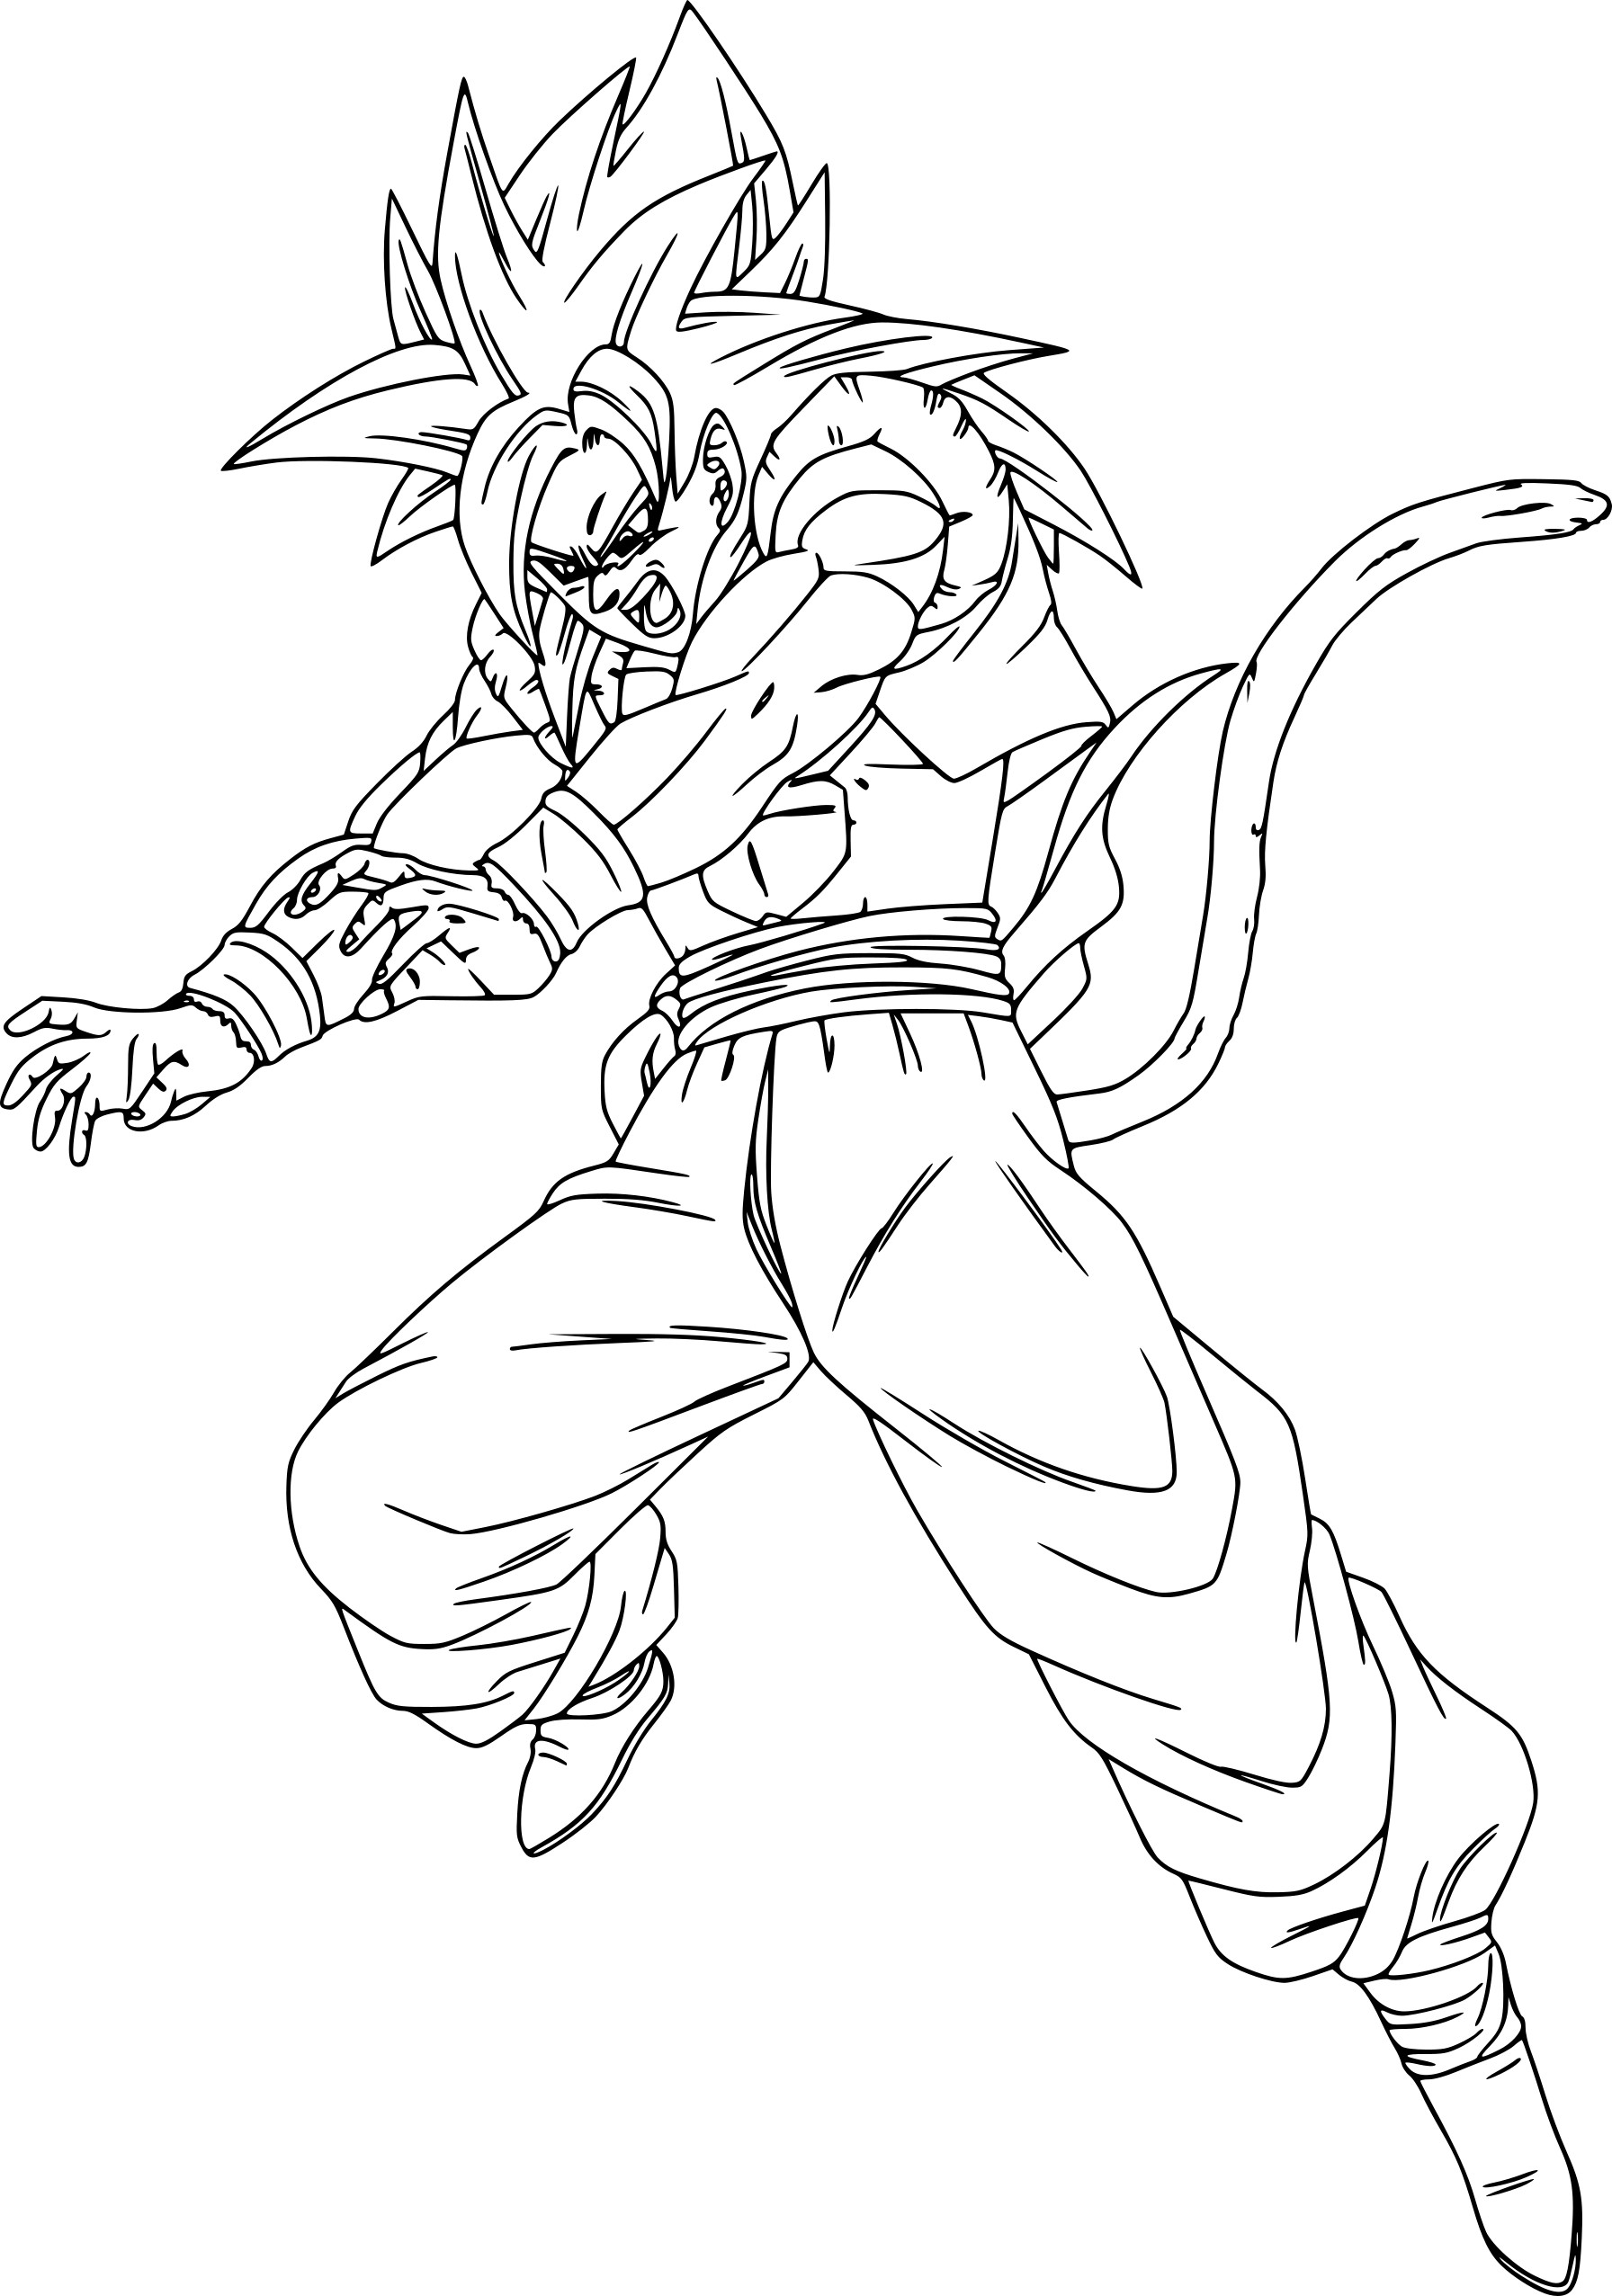 Coloriage Gogeta Dragon Ball Z A Imprimer